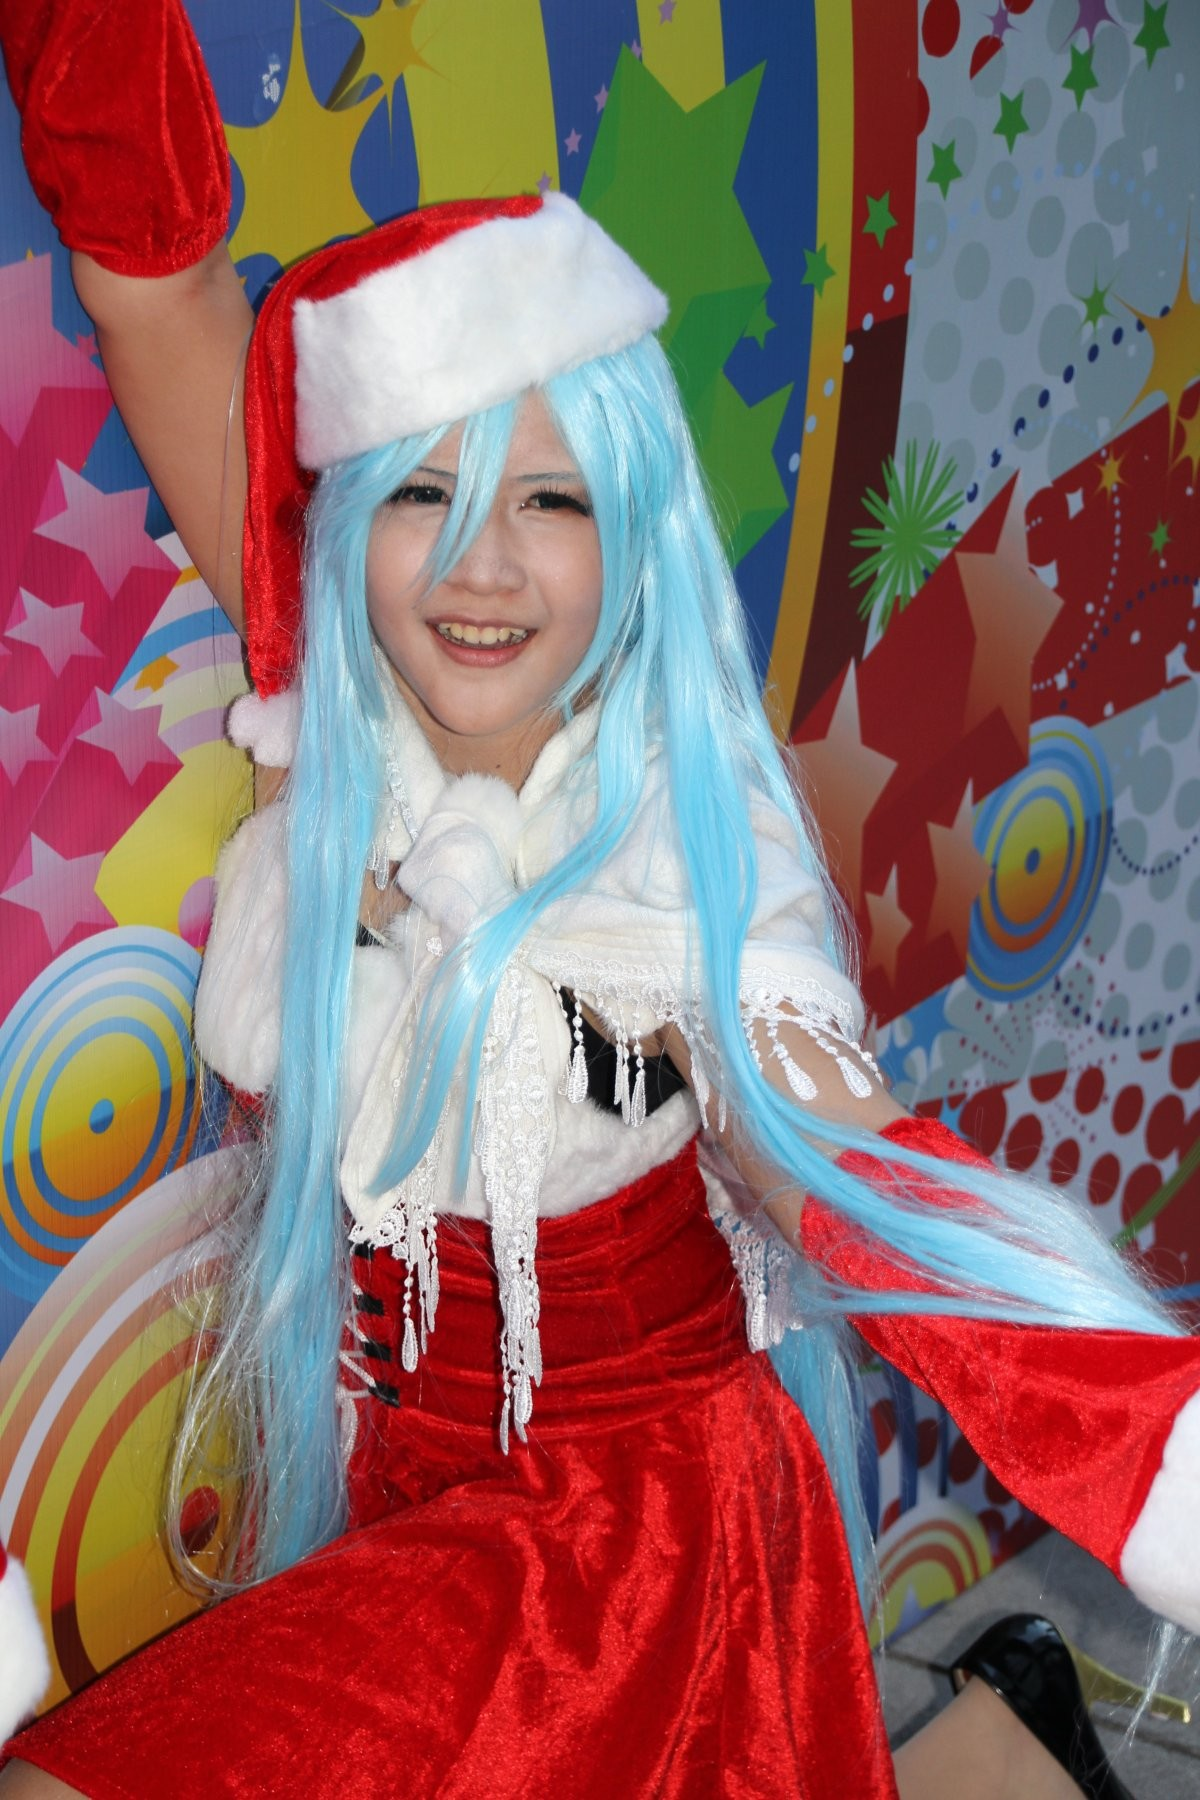 Bangkok - Cosplay / Festival J-Trends in Town am MBK XIX